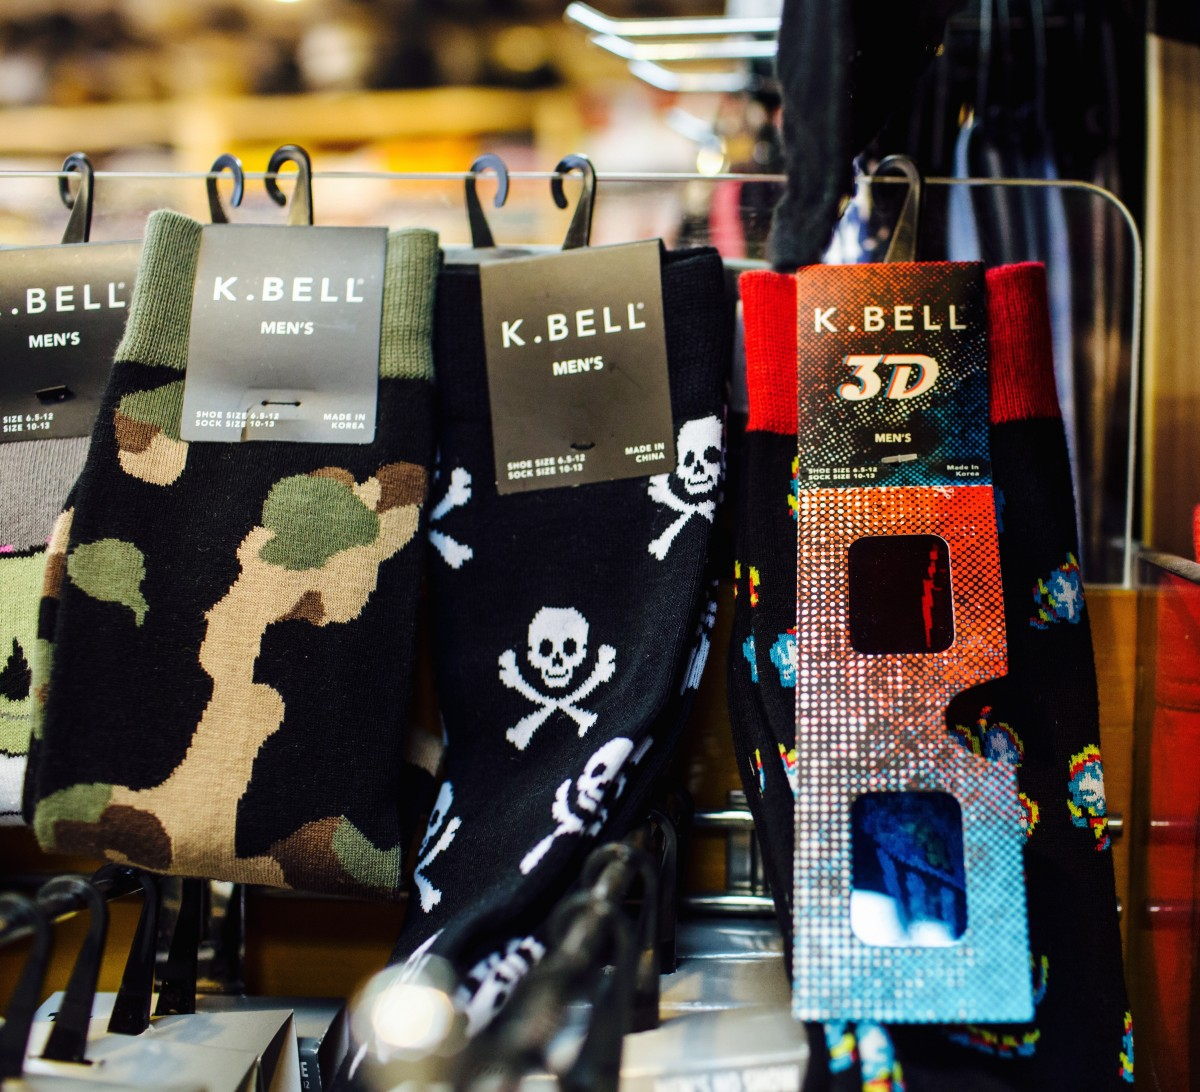 Silly socks for men and women, including a pair that comes with 3D glasses!